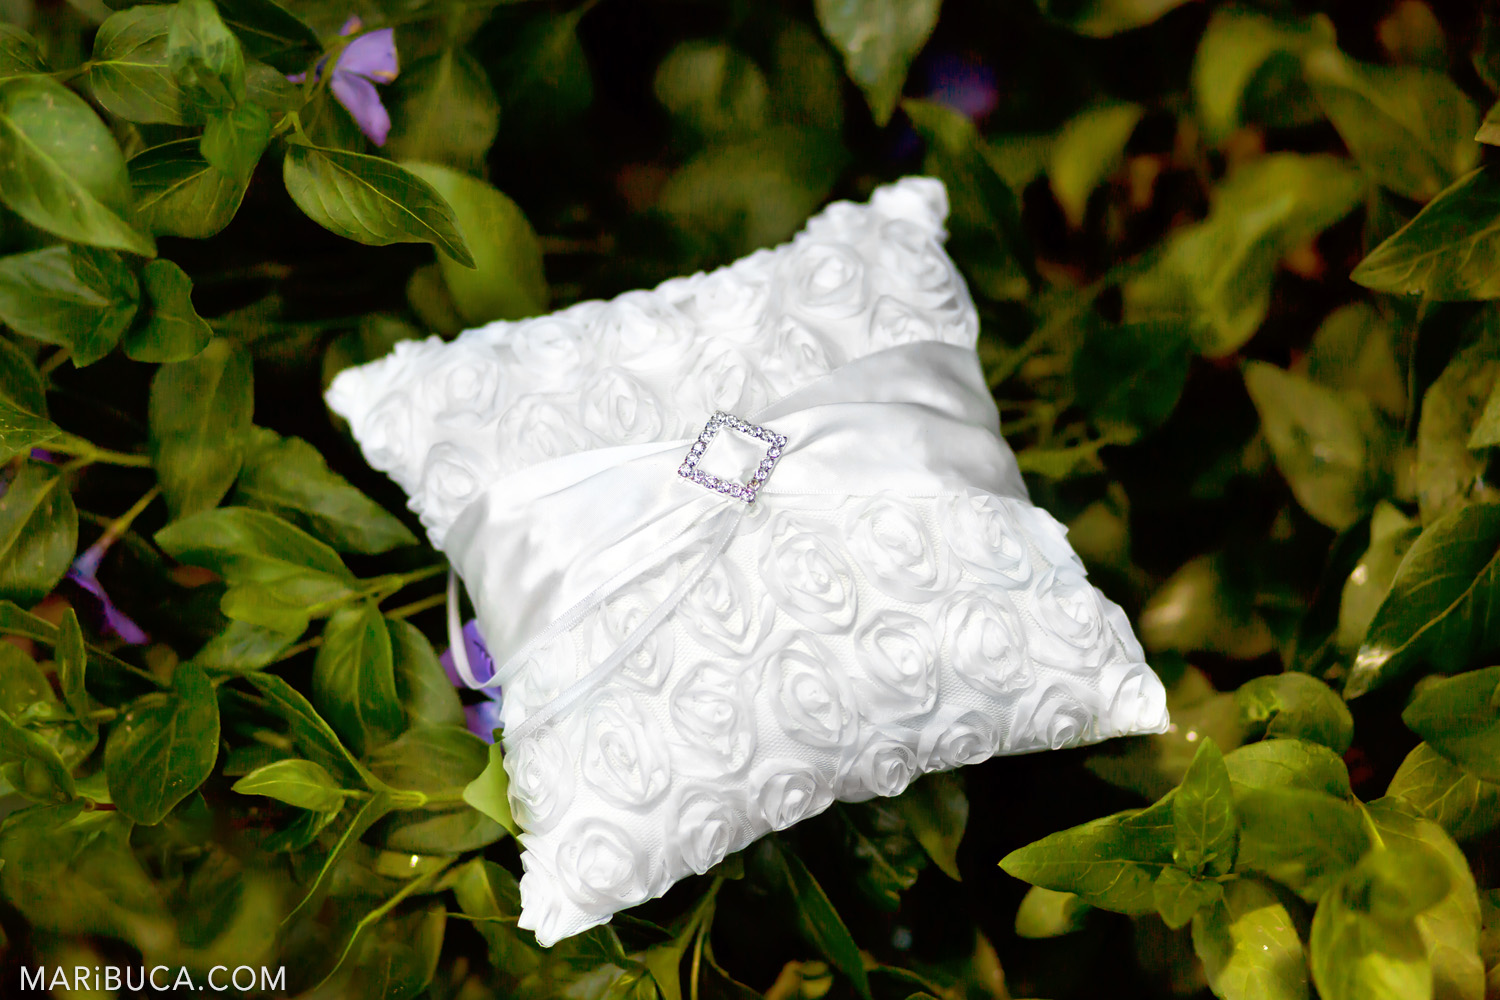 White wedding pillow for the wedding band surrounded yellow bushes in the in the Saratoga Springs Wedding